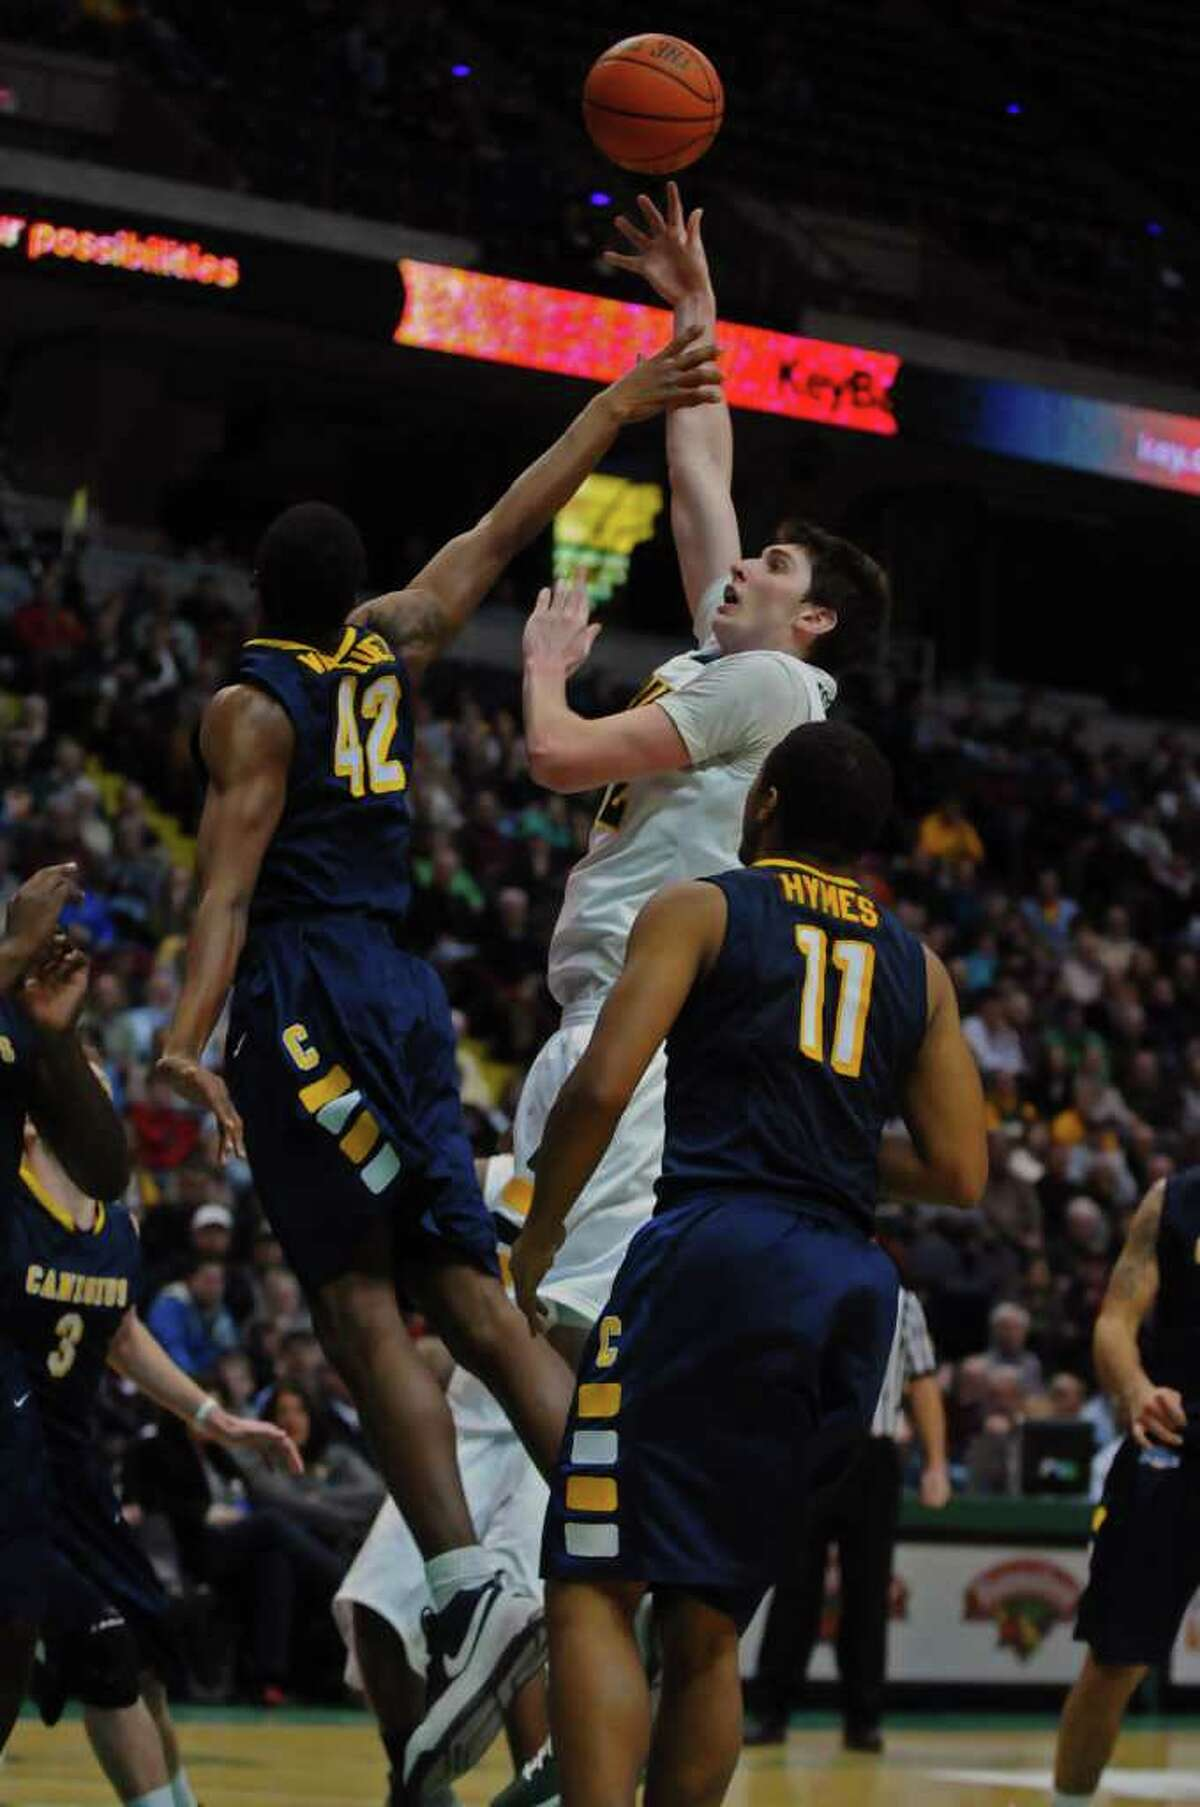 Siena's Ryan Rossiter puts up a shot over Canisius Tomas Vasquez-Simmons during the second half of Siena's 73-69 win over Canisius at the Times Union Center in Albany, NY on Monday night January 17, 2011. ( Philip Kamrass / Times Union )